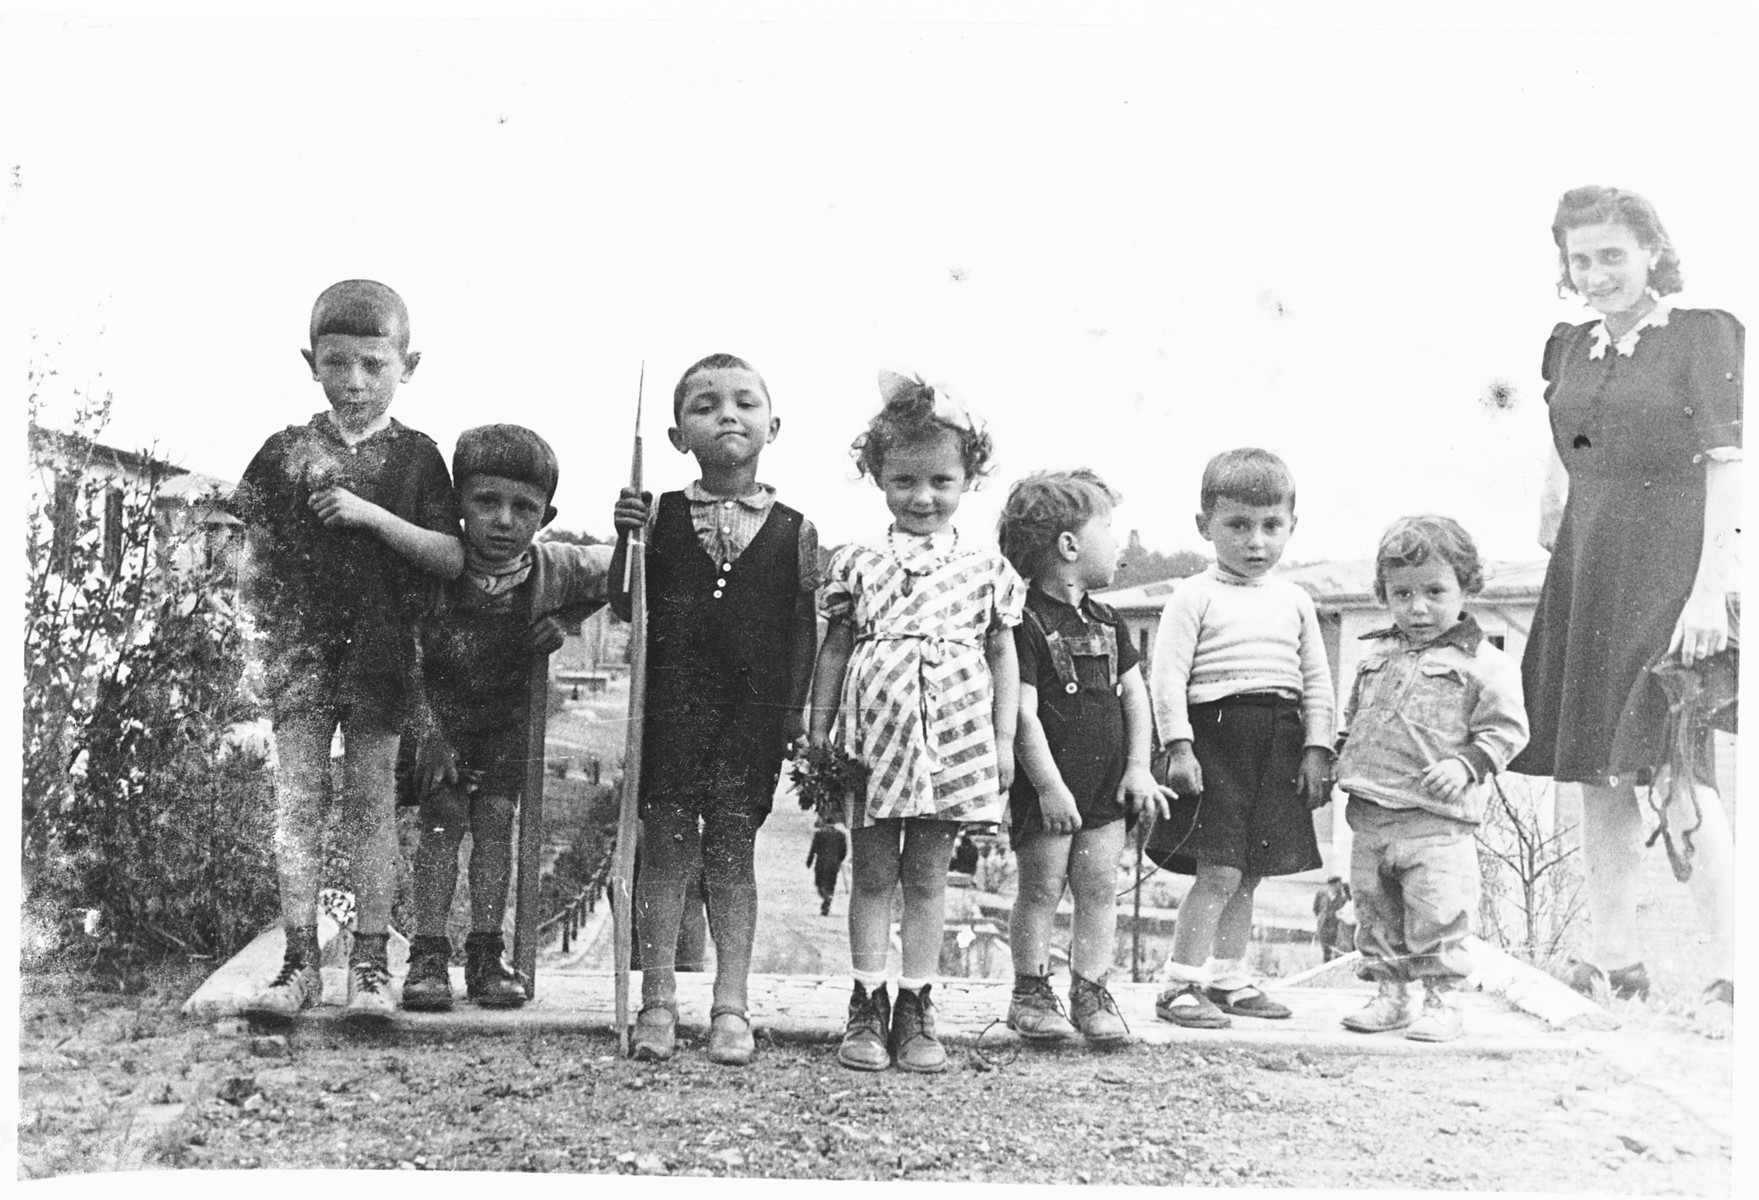 A group of Jewish preschoolers pose outside with their teacher at the Schlachtensee displaced persons camp.